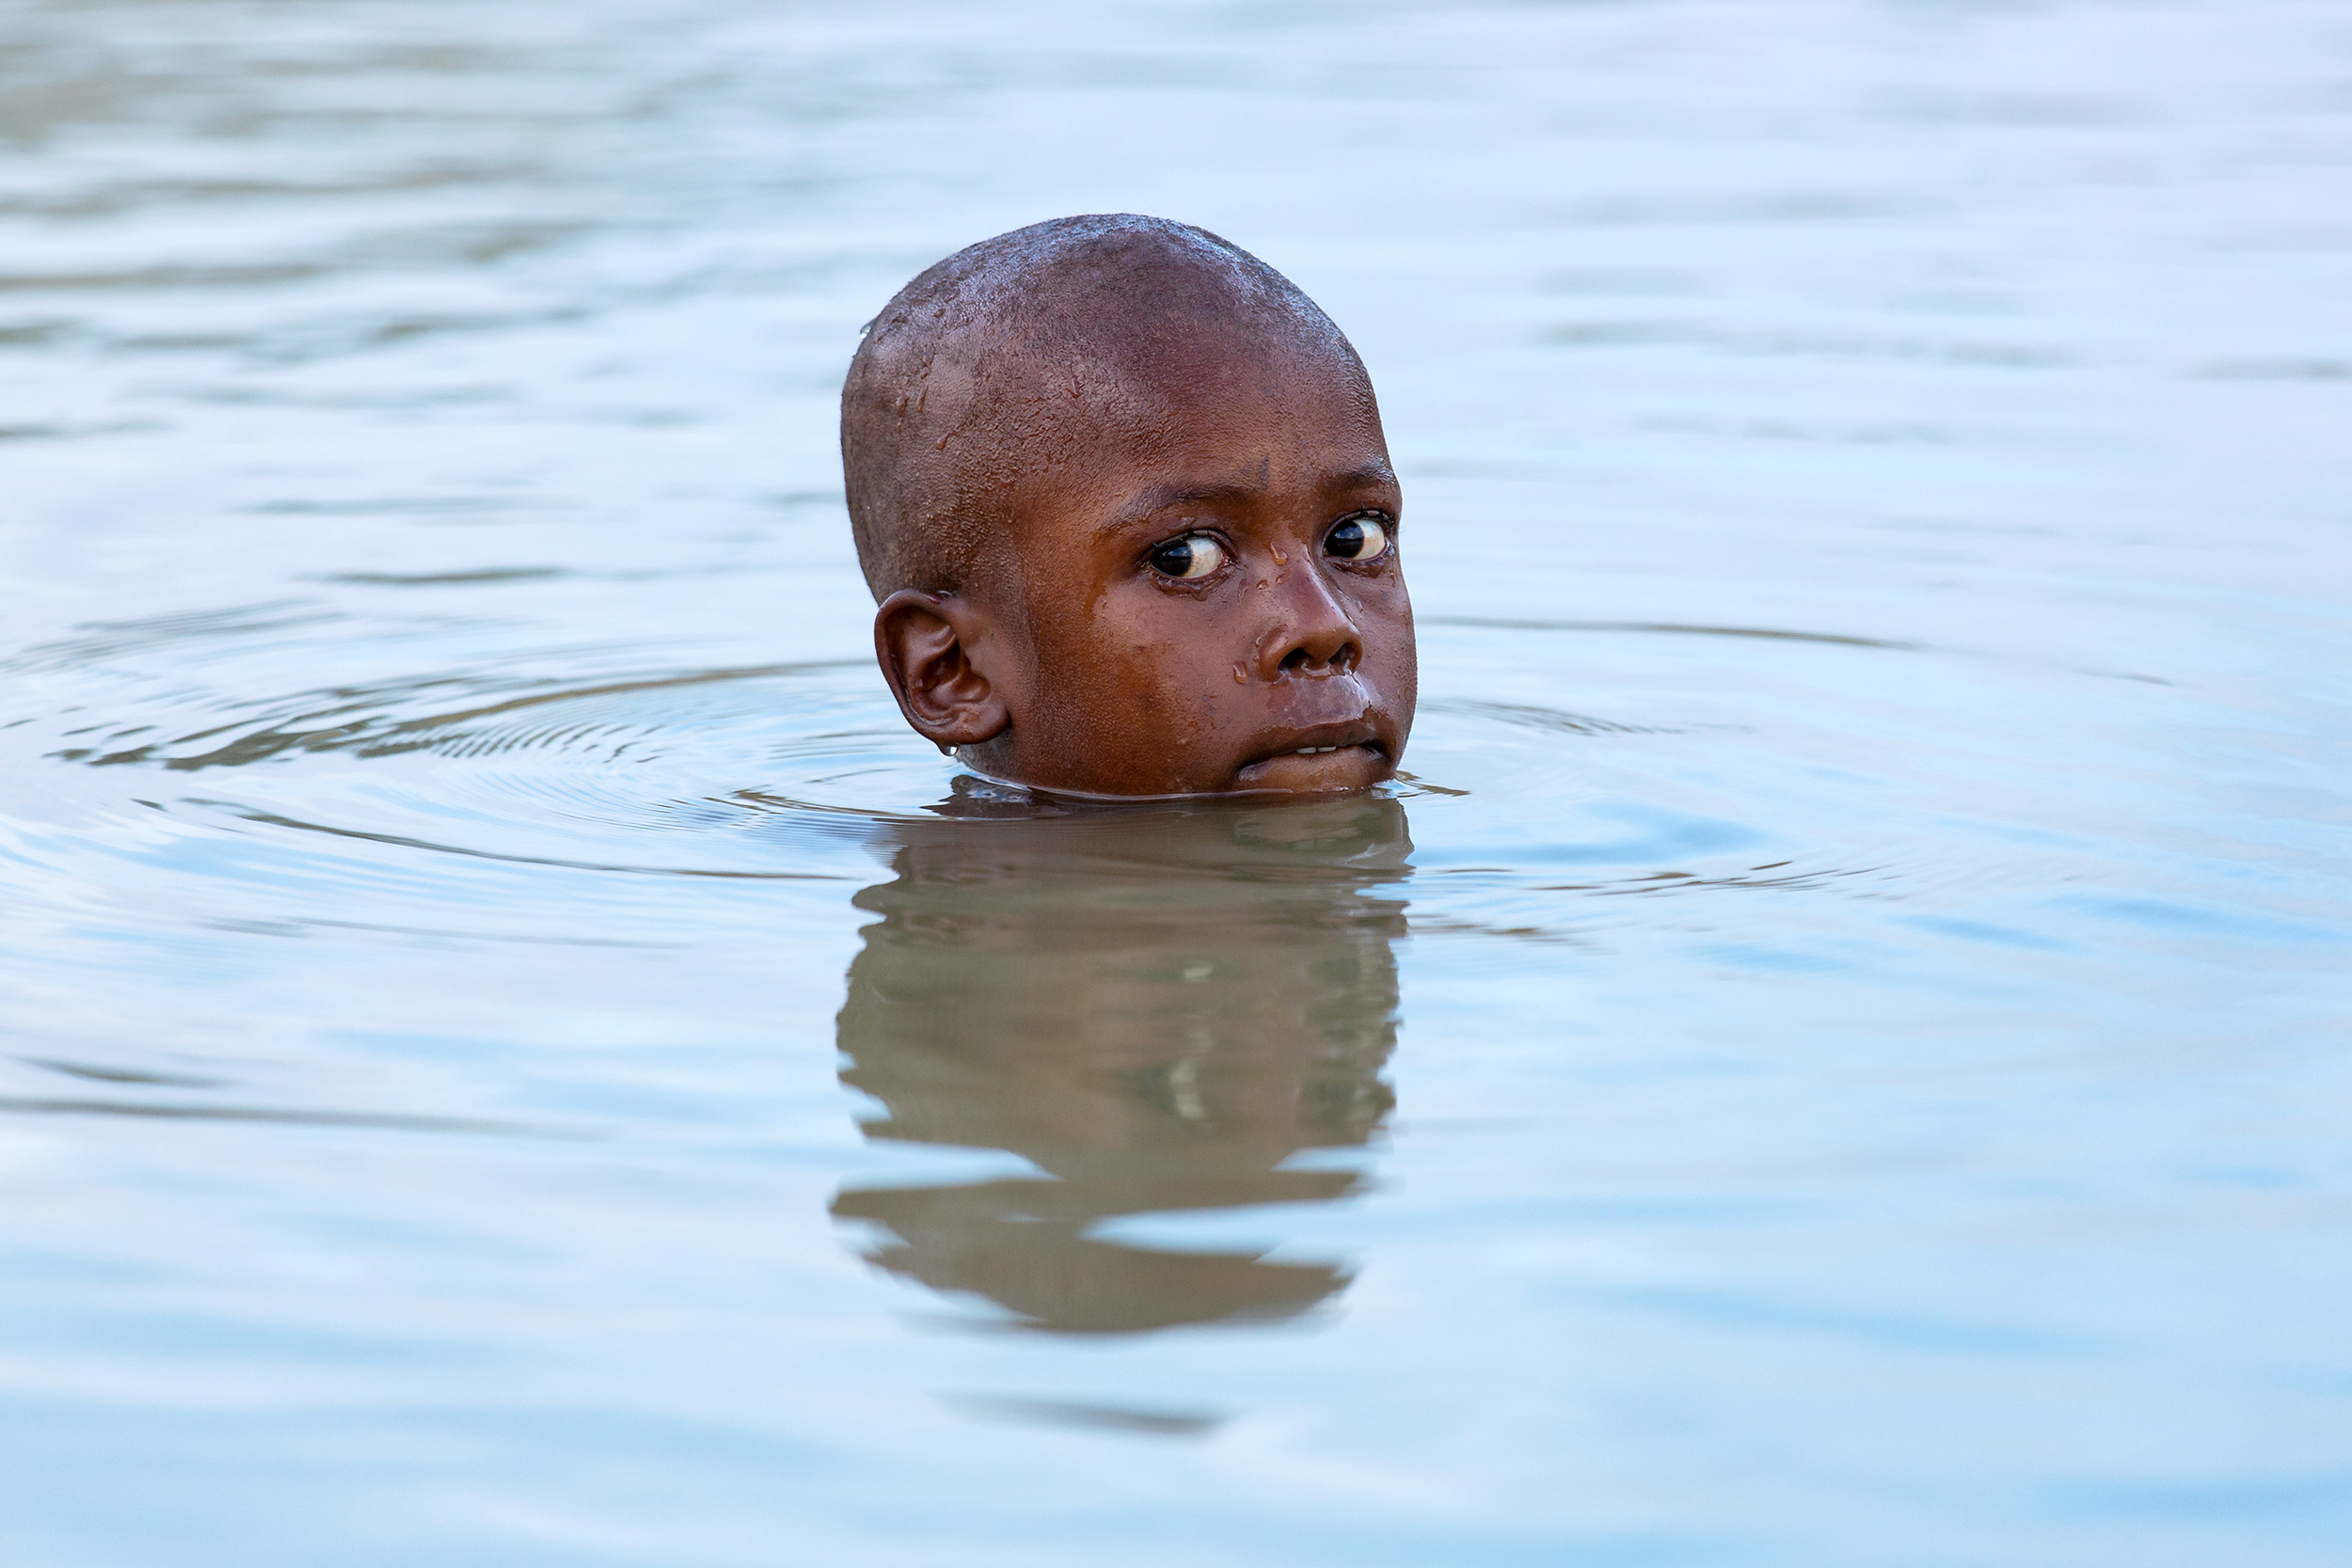 TRAVEL_HAITI_boy_water_bath_haitian_bitelip__editorial_4026_WB